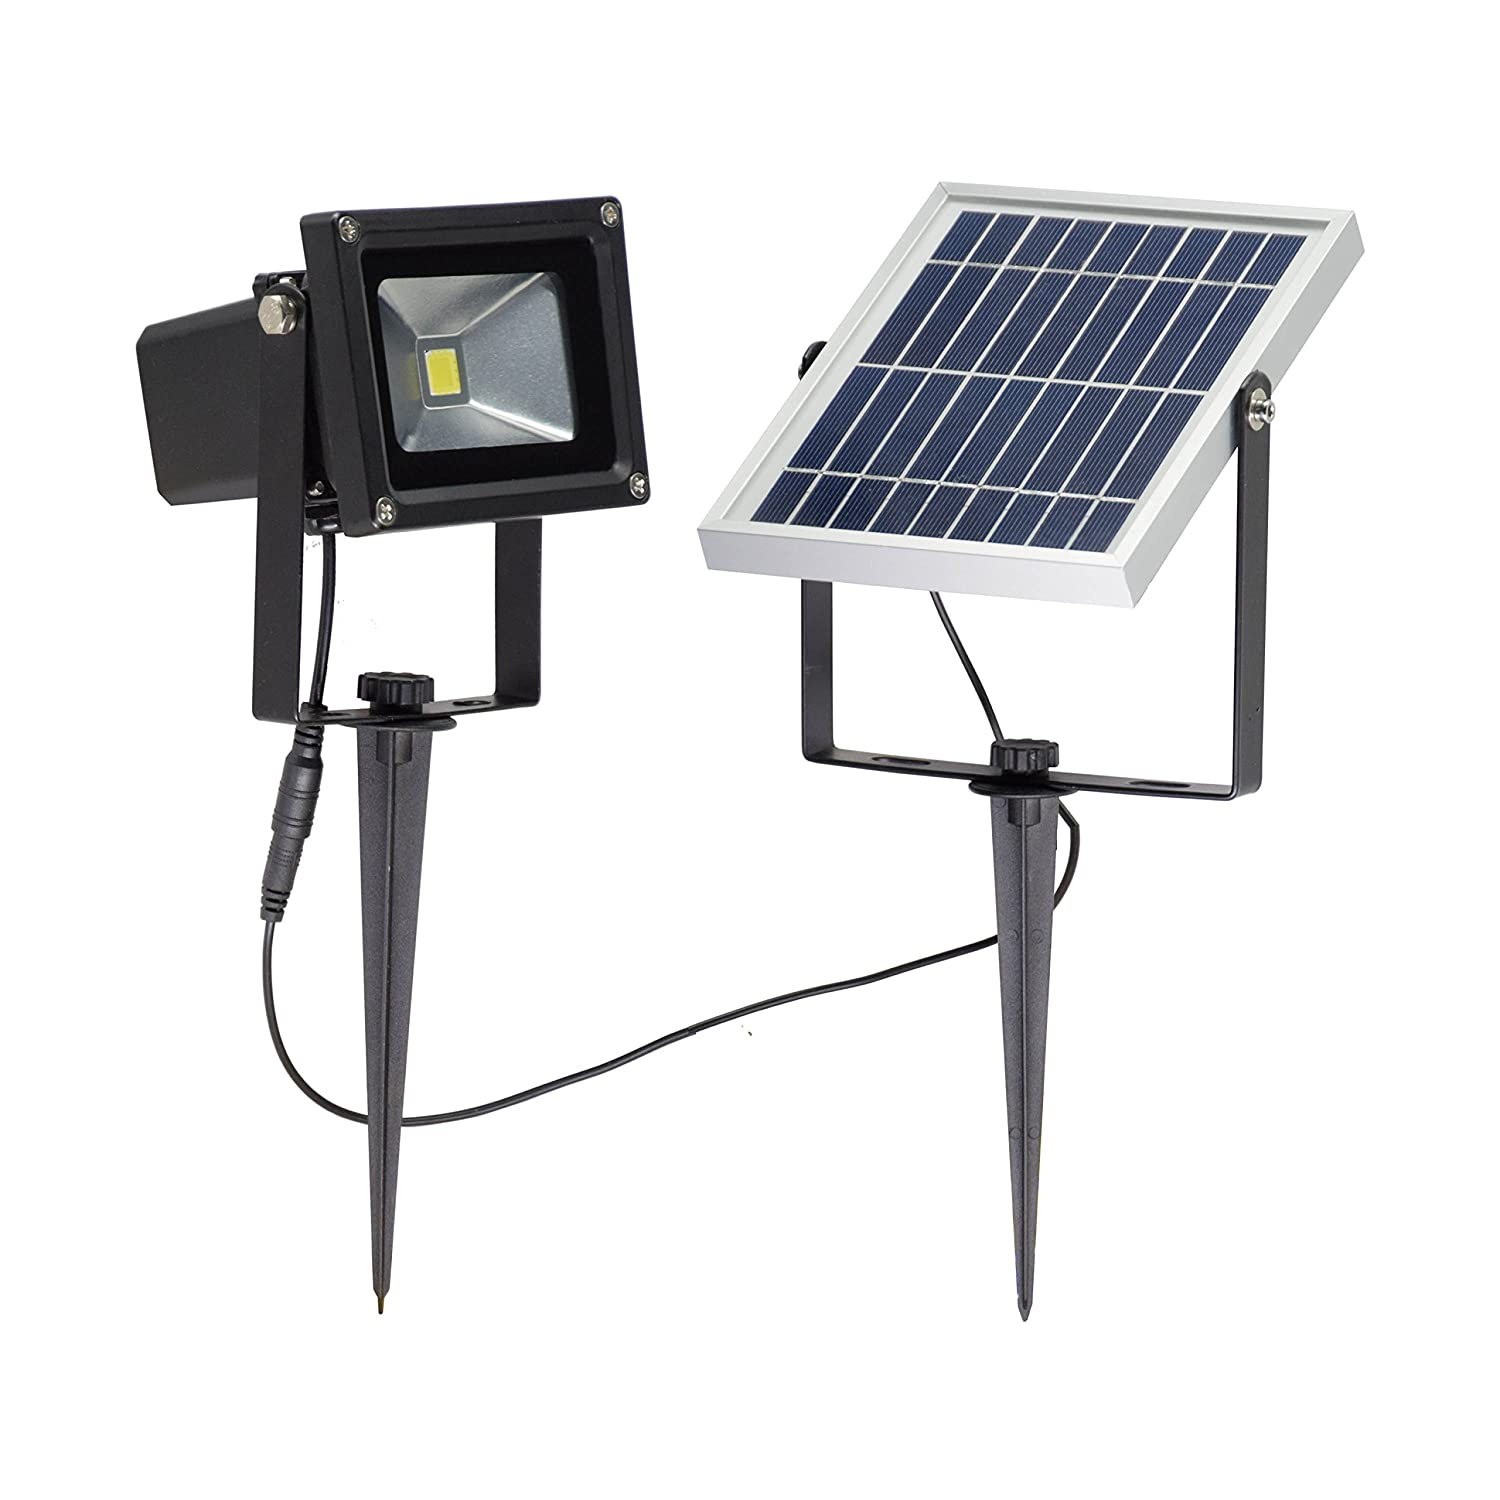 LED Solar Powered Dusk-to-Dawn Waterproof Outdoor Path